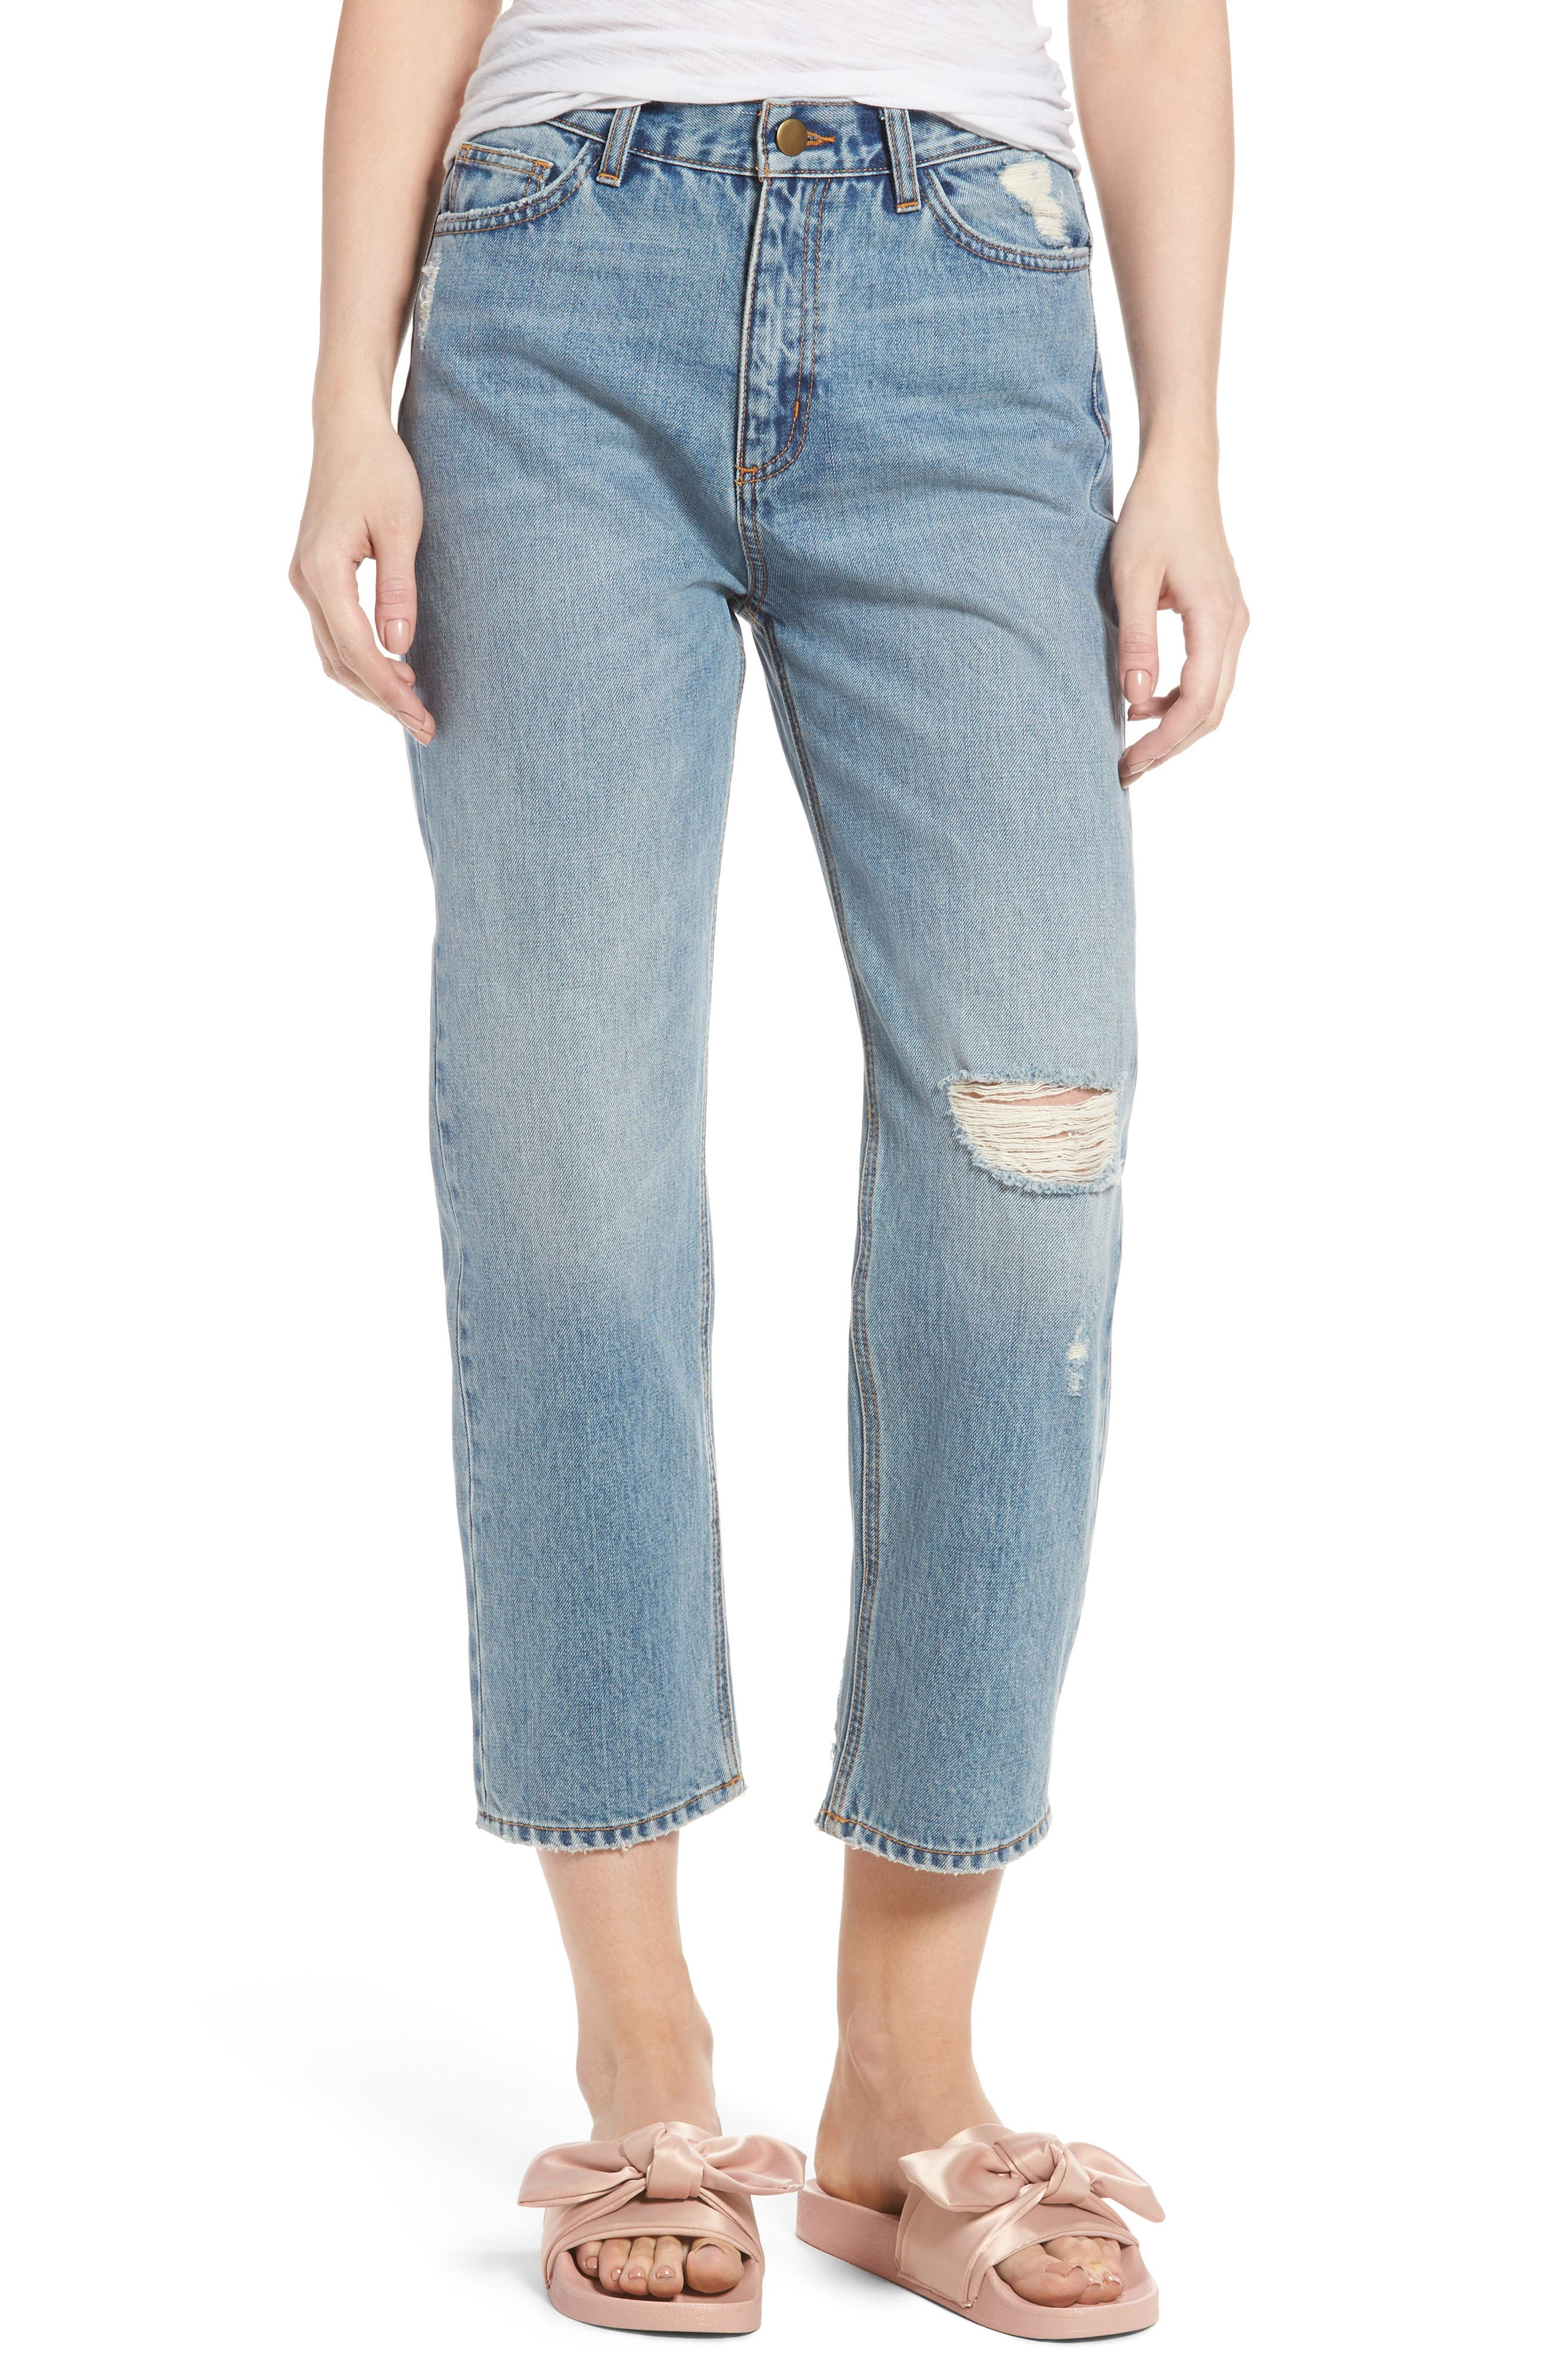 EVIDNT Ripped Crop Straight Leg Jeans